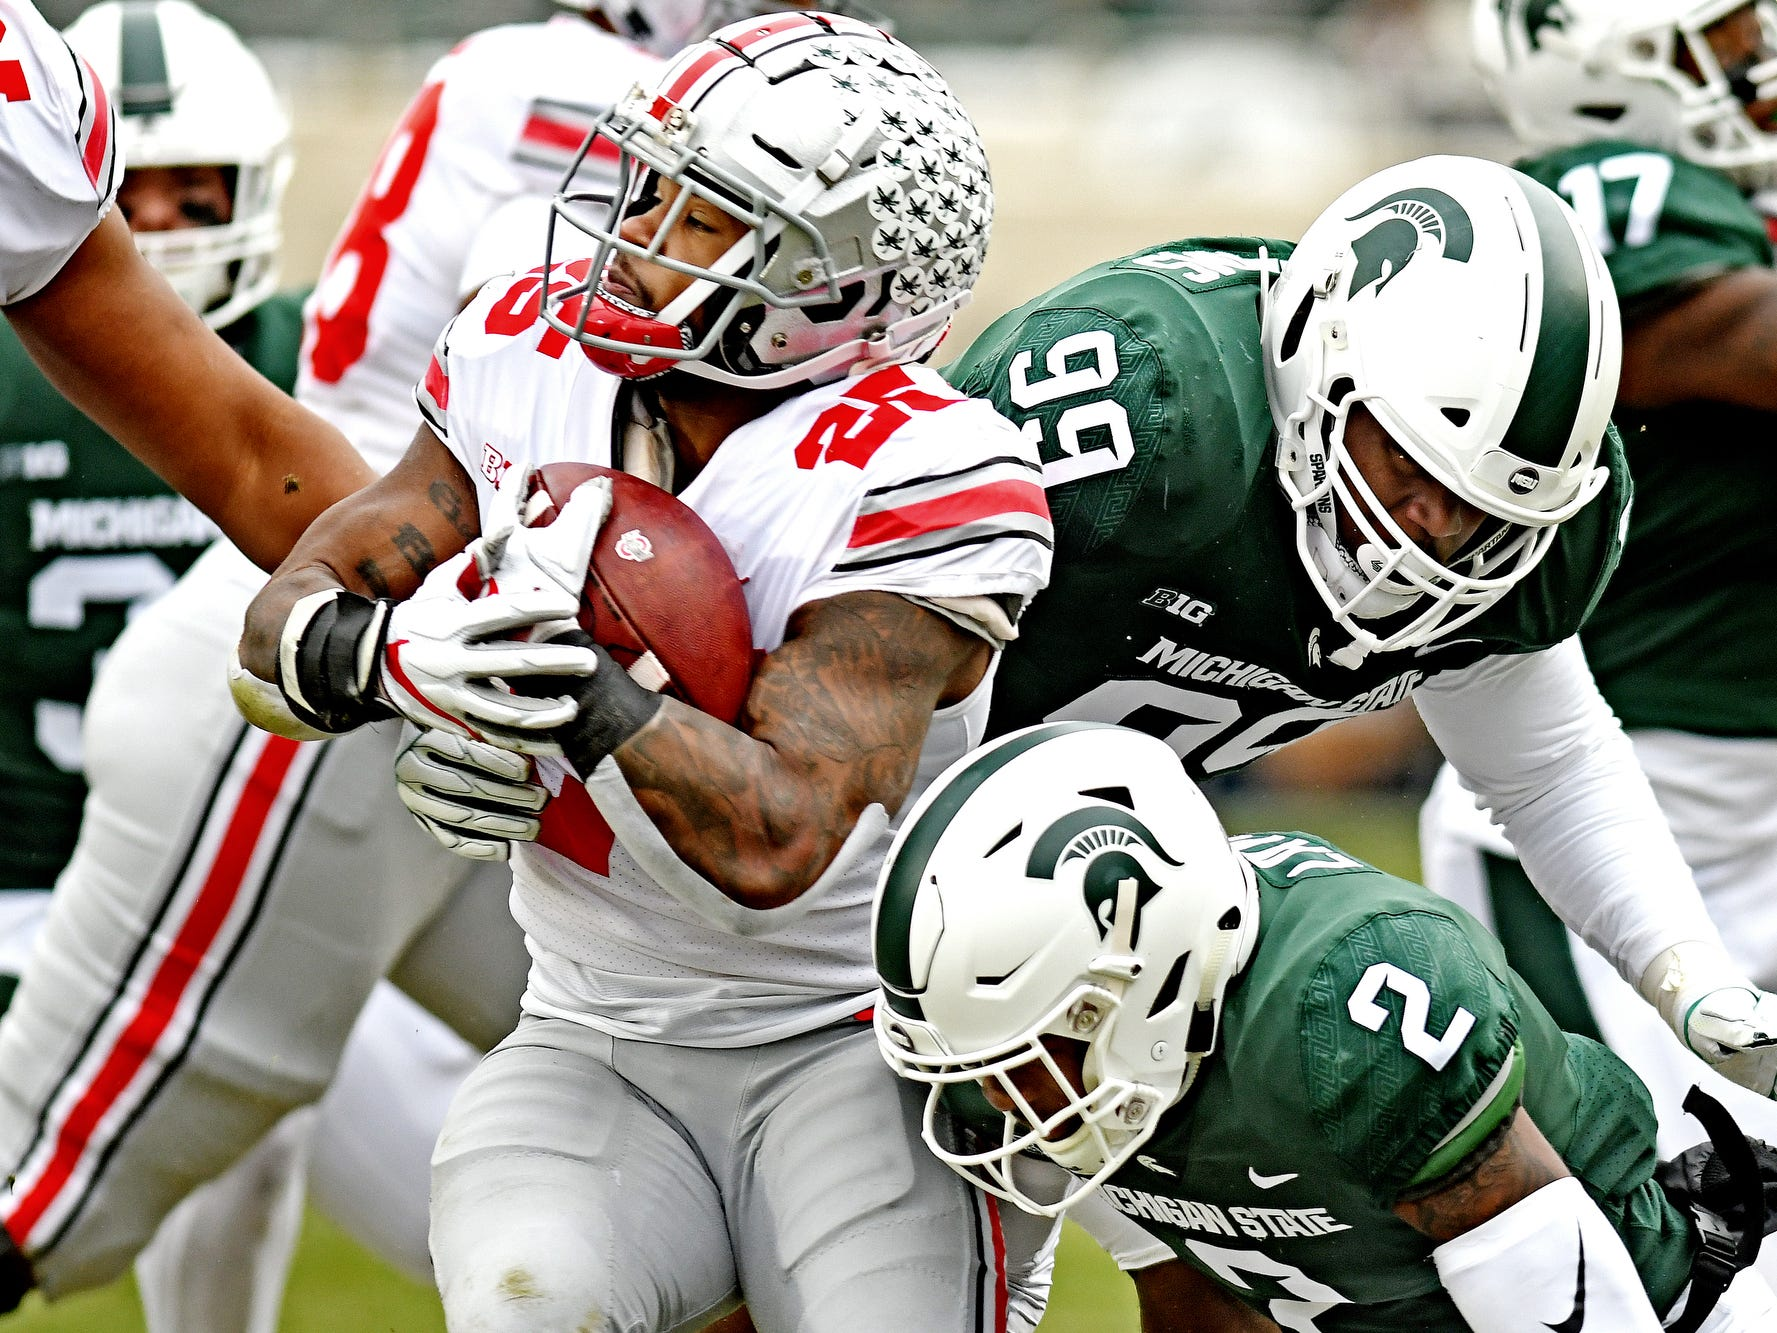 Michigan State's Raequan Williams, right, and Justin Layne, bottom, tackle Ohio State's Mike Weber Jr. during the first quarter on Saturday, Nov. 10, 2018, in East Lansing.